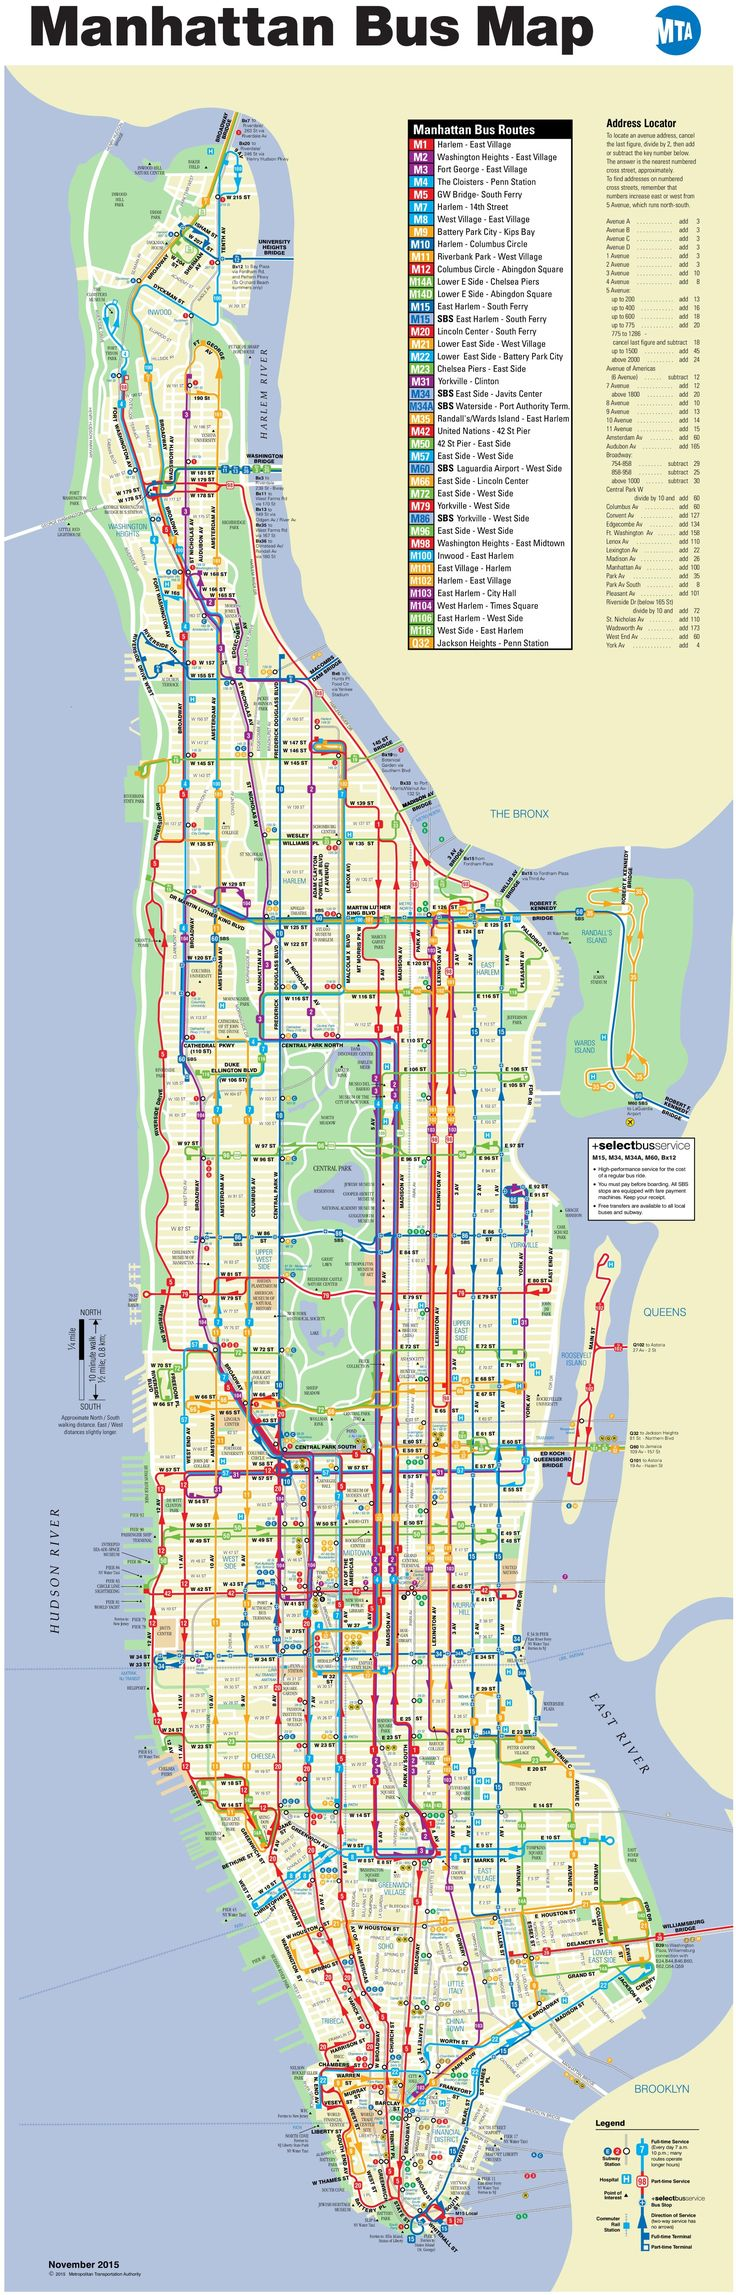 Best Bus Map Ideas On Pinterest Map Of Underground Map Of - Bus map brooklyn